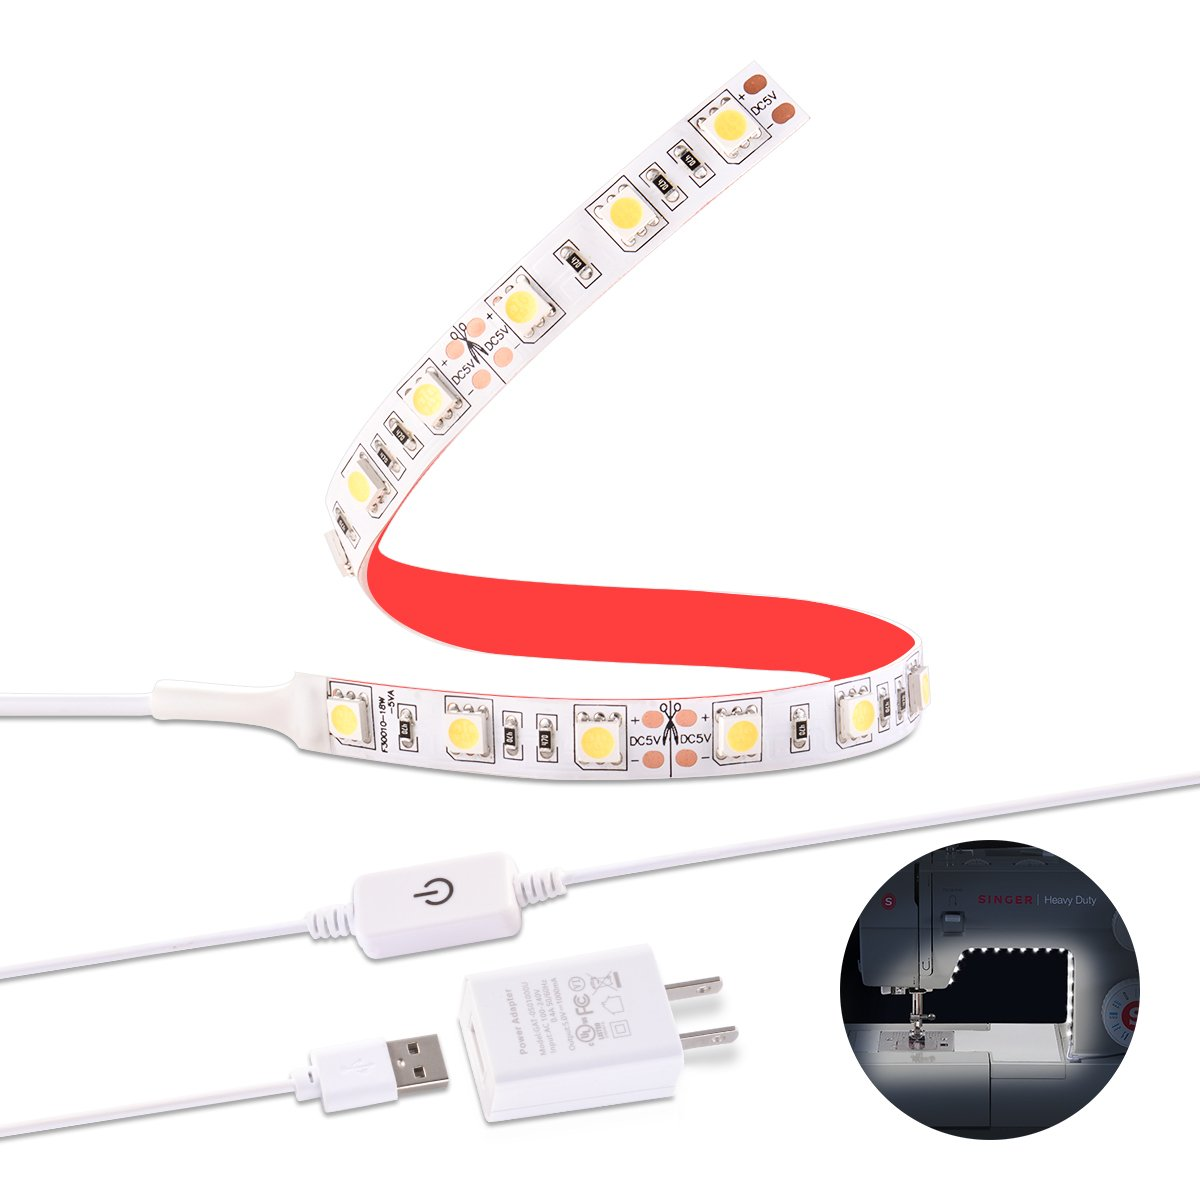 Sunix Sewing Machine LED Light, Strip Lighting kit with Touch Dimmer and USB Power, Natural White with Flexible 3M Adhesive Tape, Fits All Sewing Machines SU251